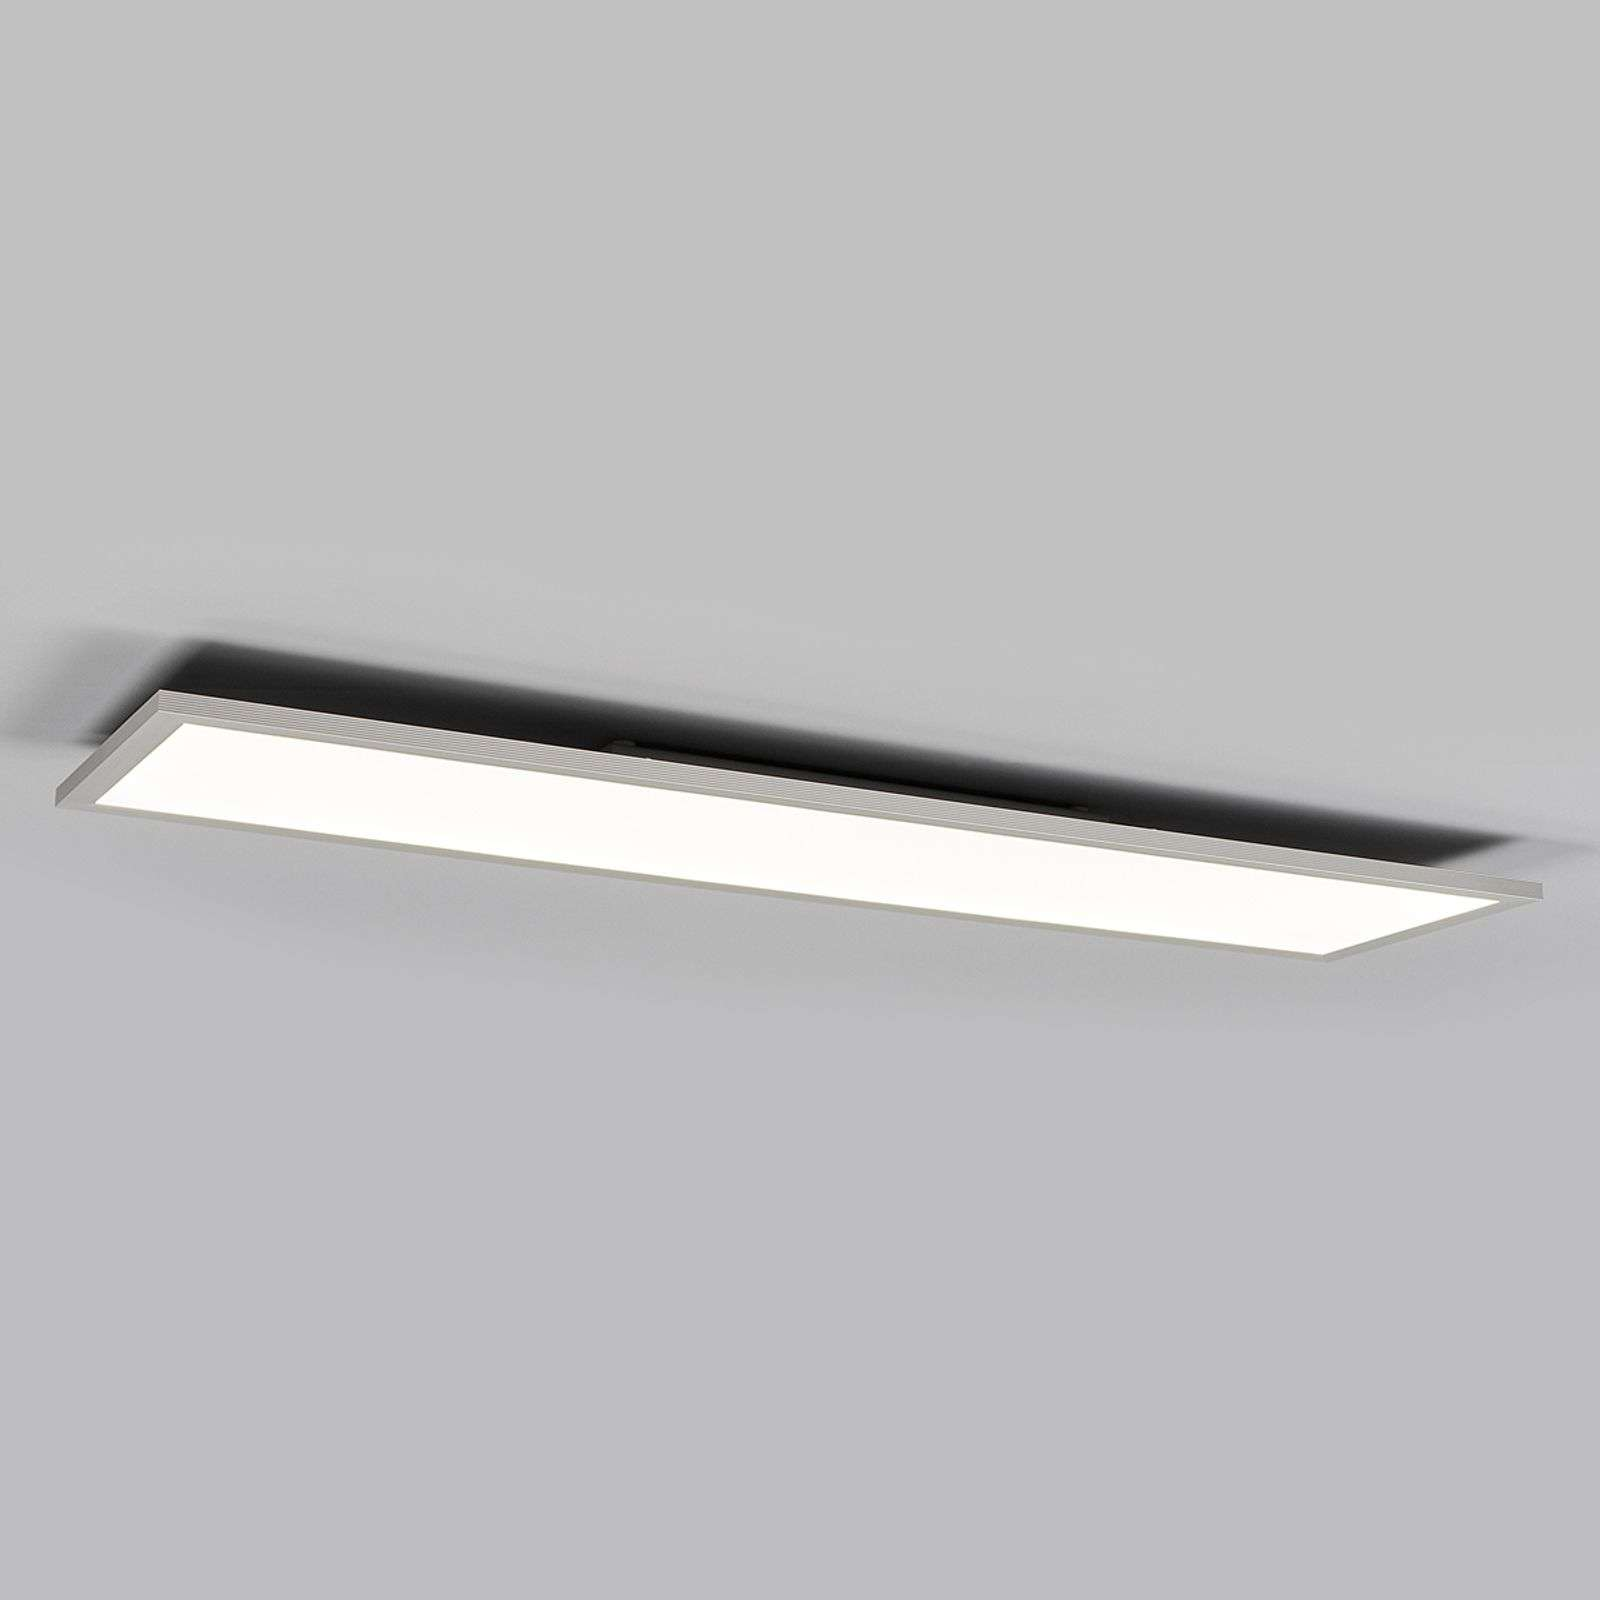 Pannello LED All in one, BAP, luce diurna